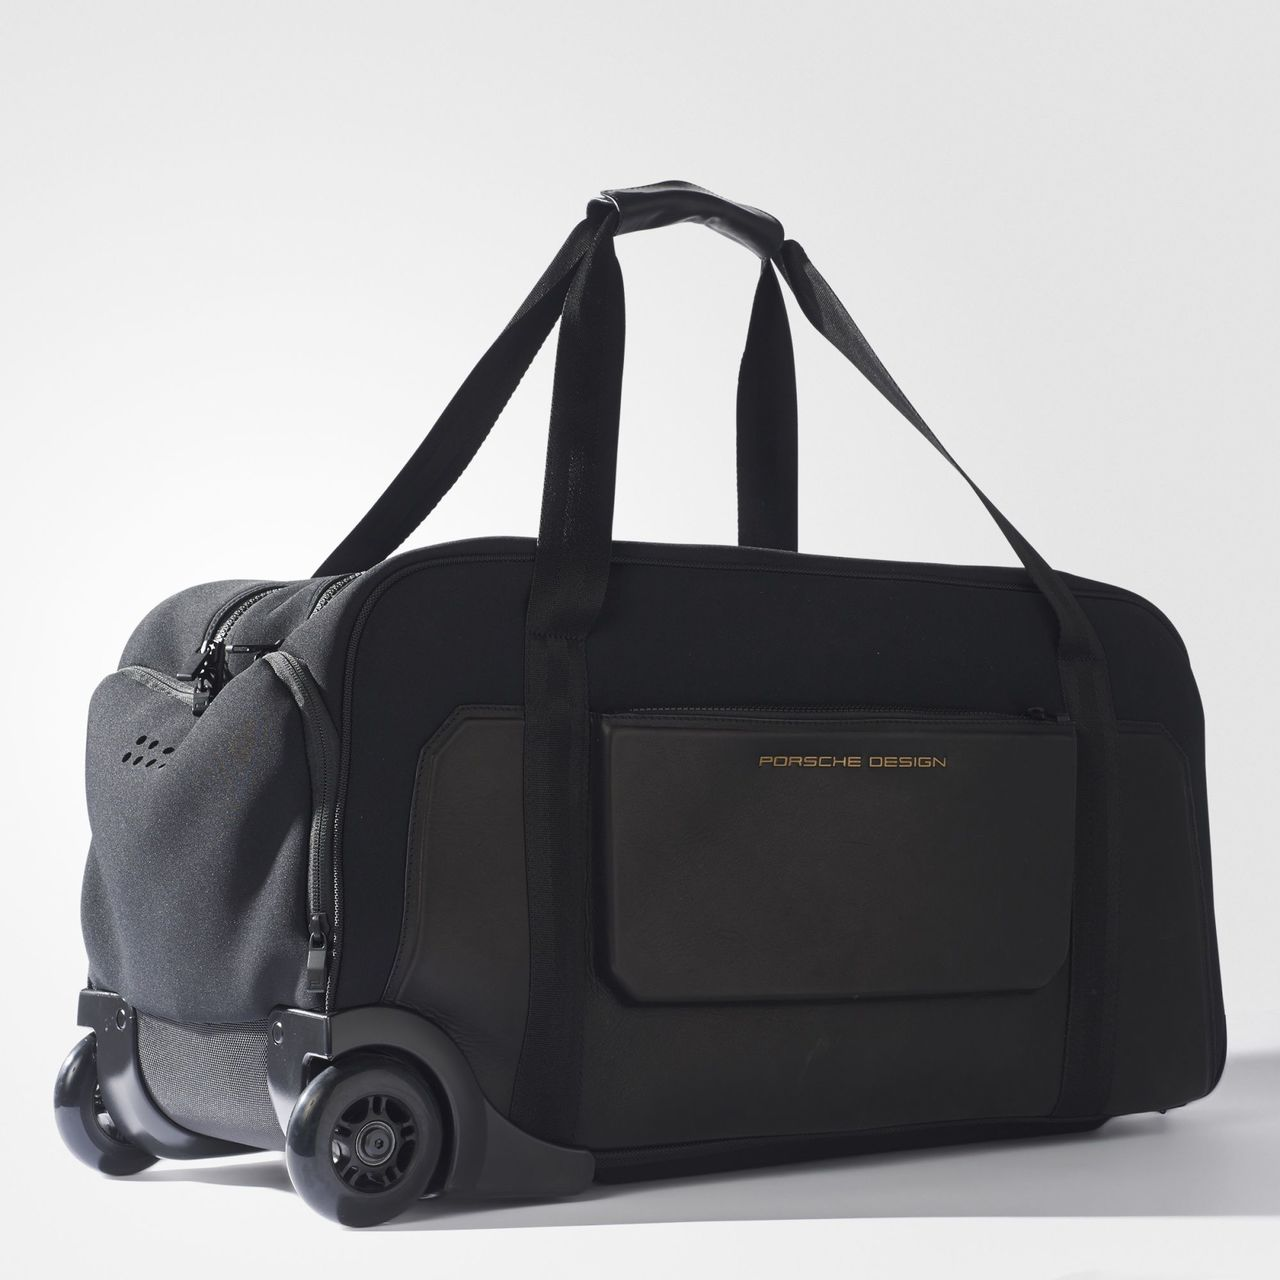 Adidas Porsche Design Sport Football Bag Black